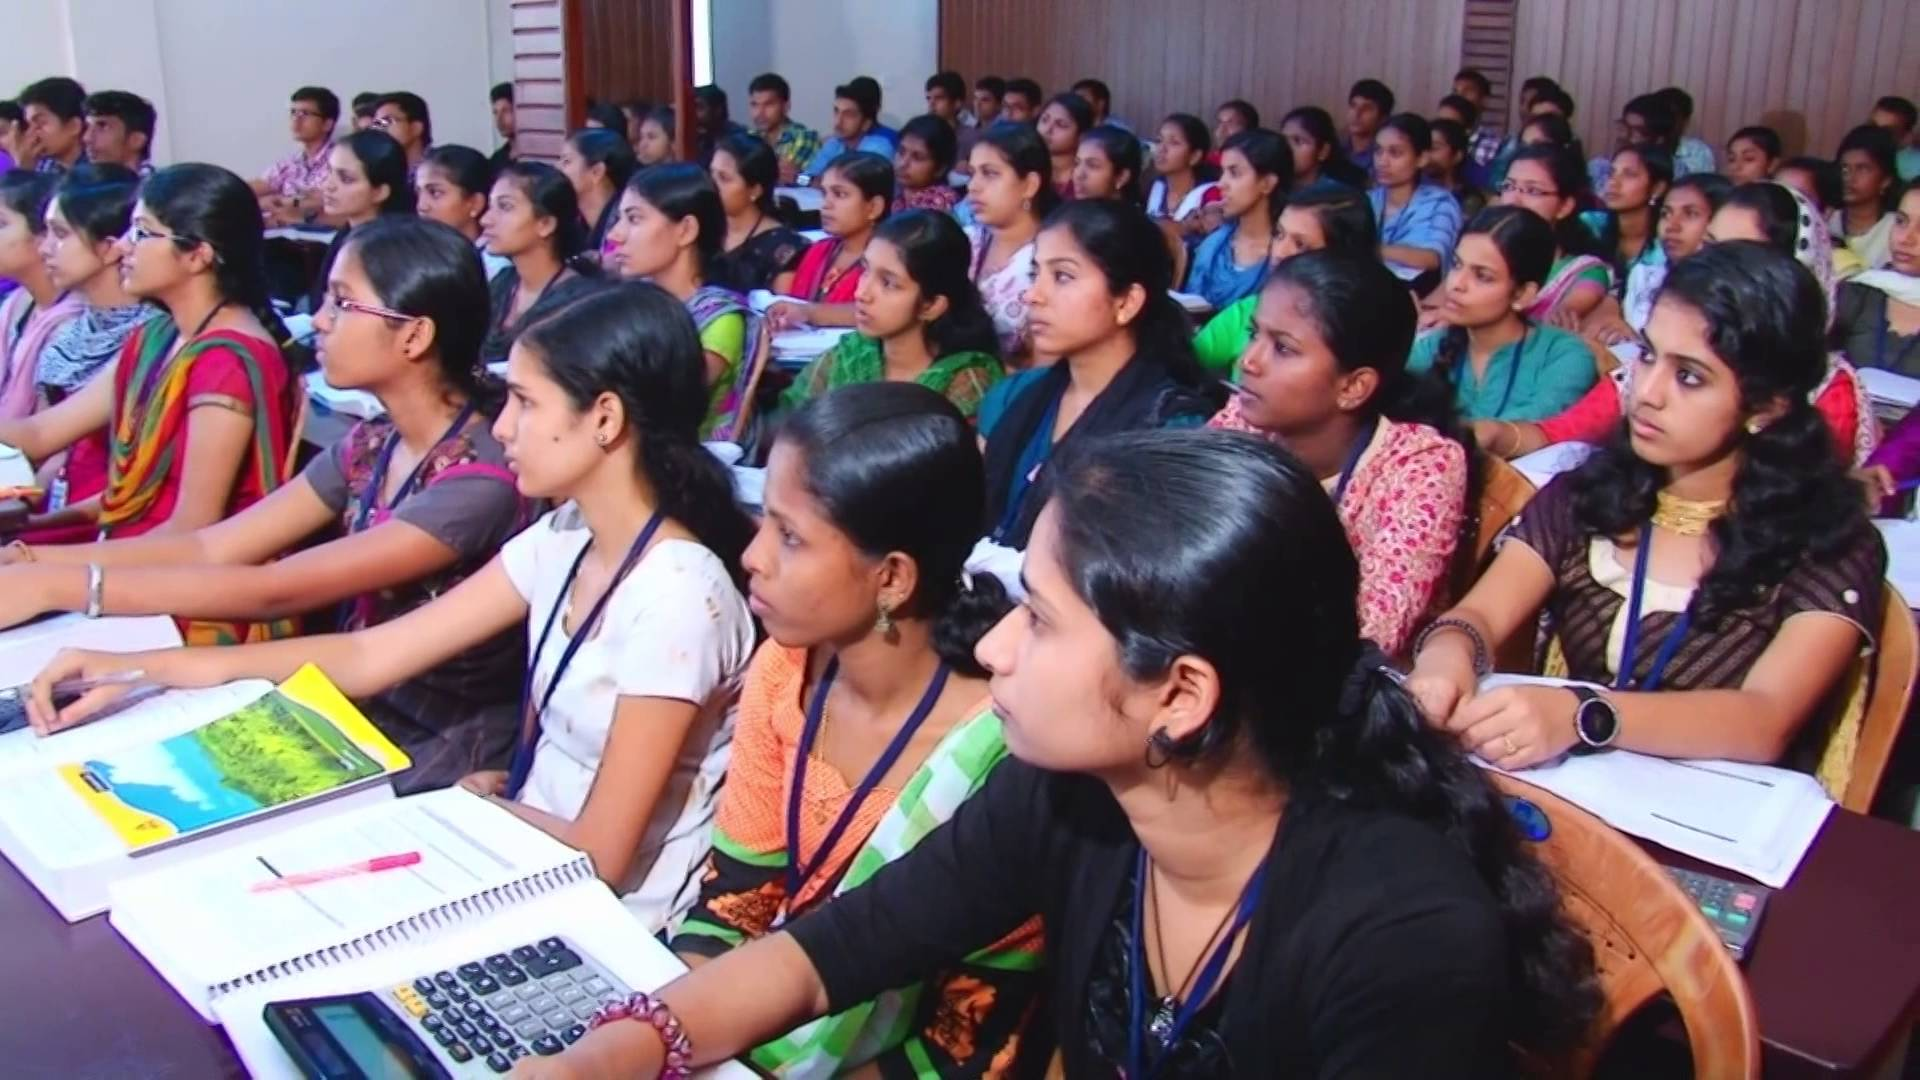 JPSC may hold joint 2017-18-19 civil service exams